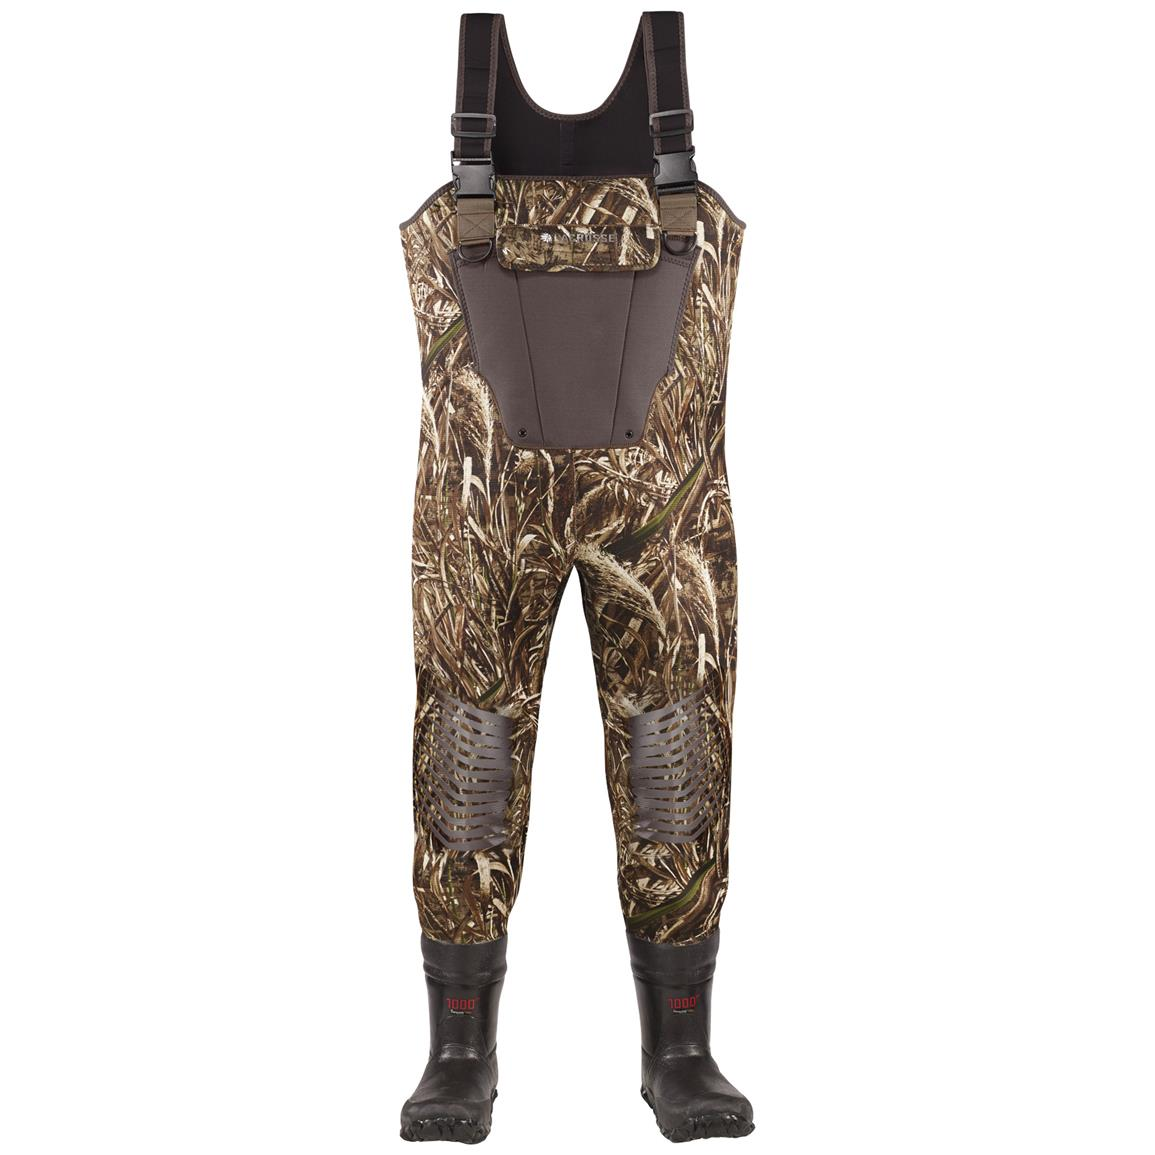 Youth Lacrosse 1,000 Gram Thinsulate Ultra Mallard II Waders, Realtree MAX-5 Camo - Front view